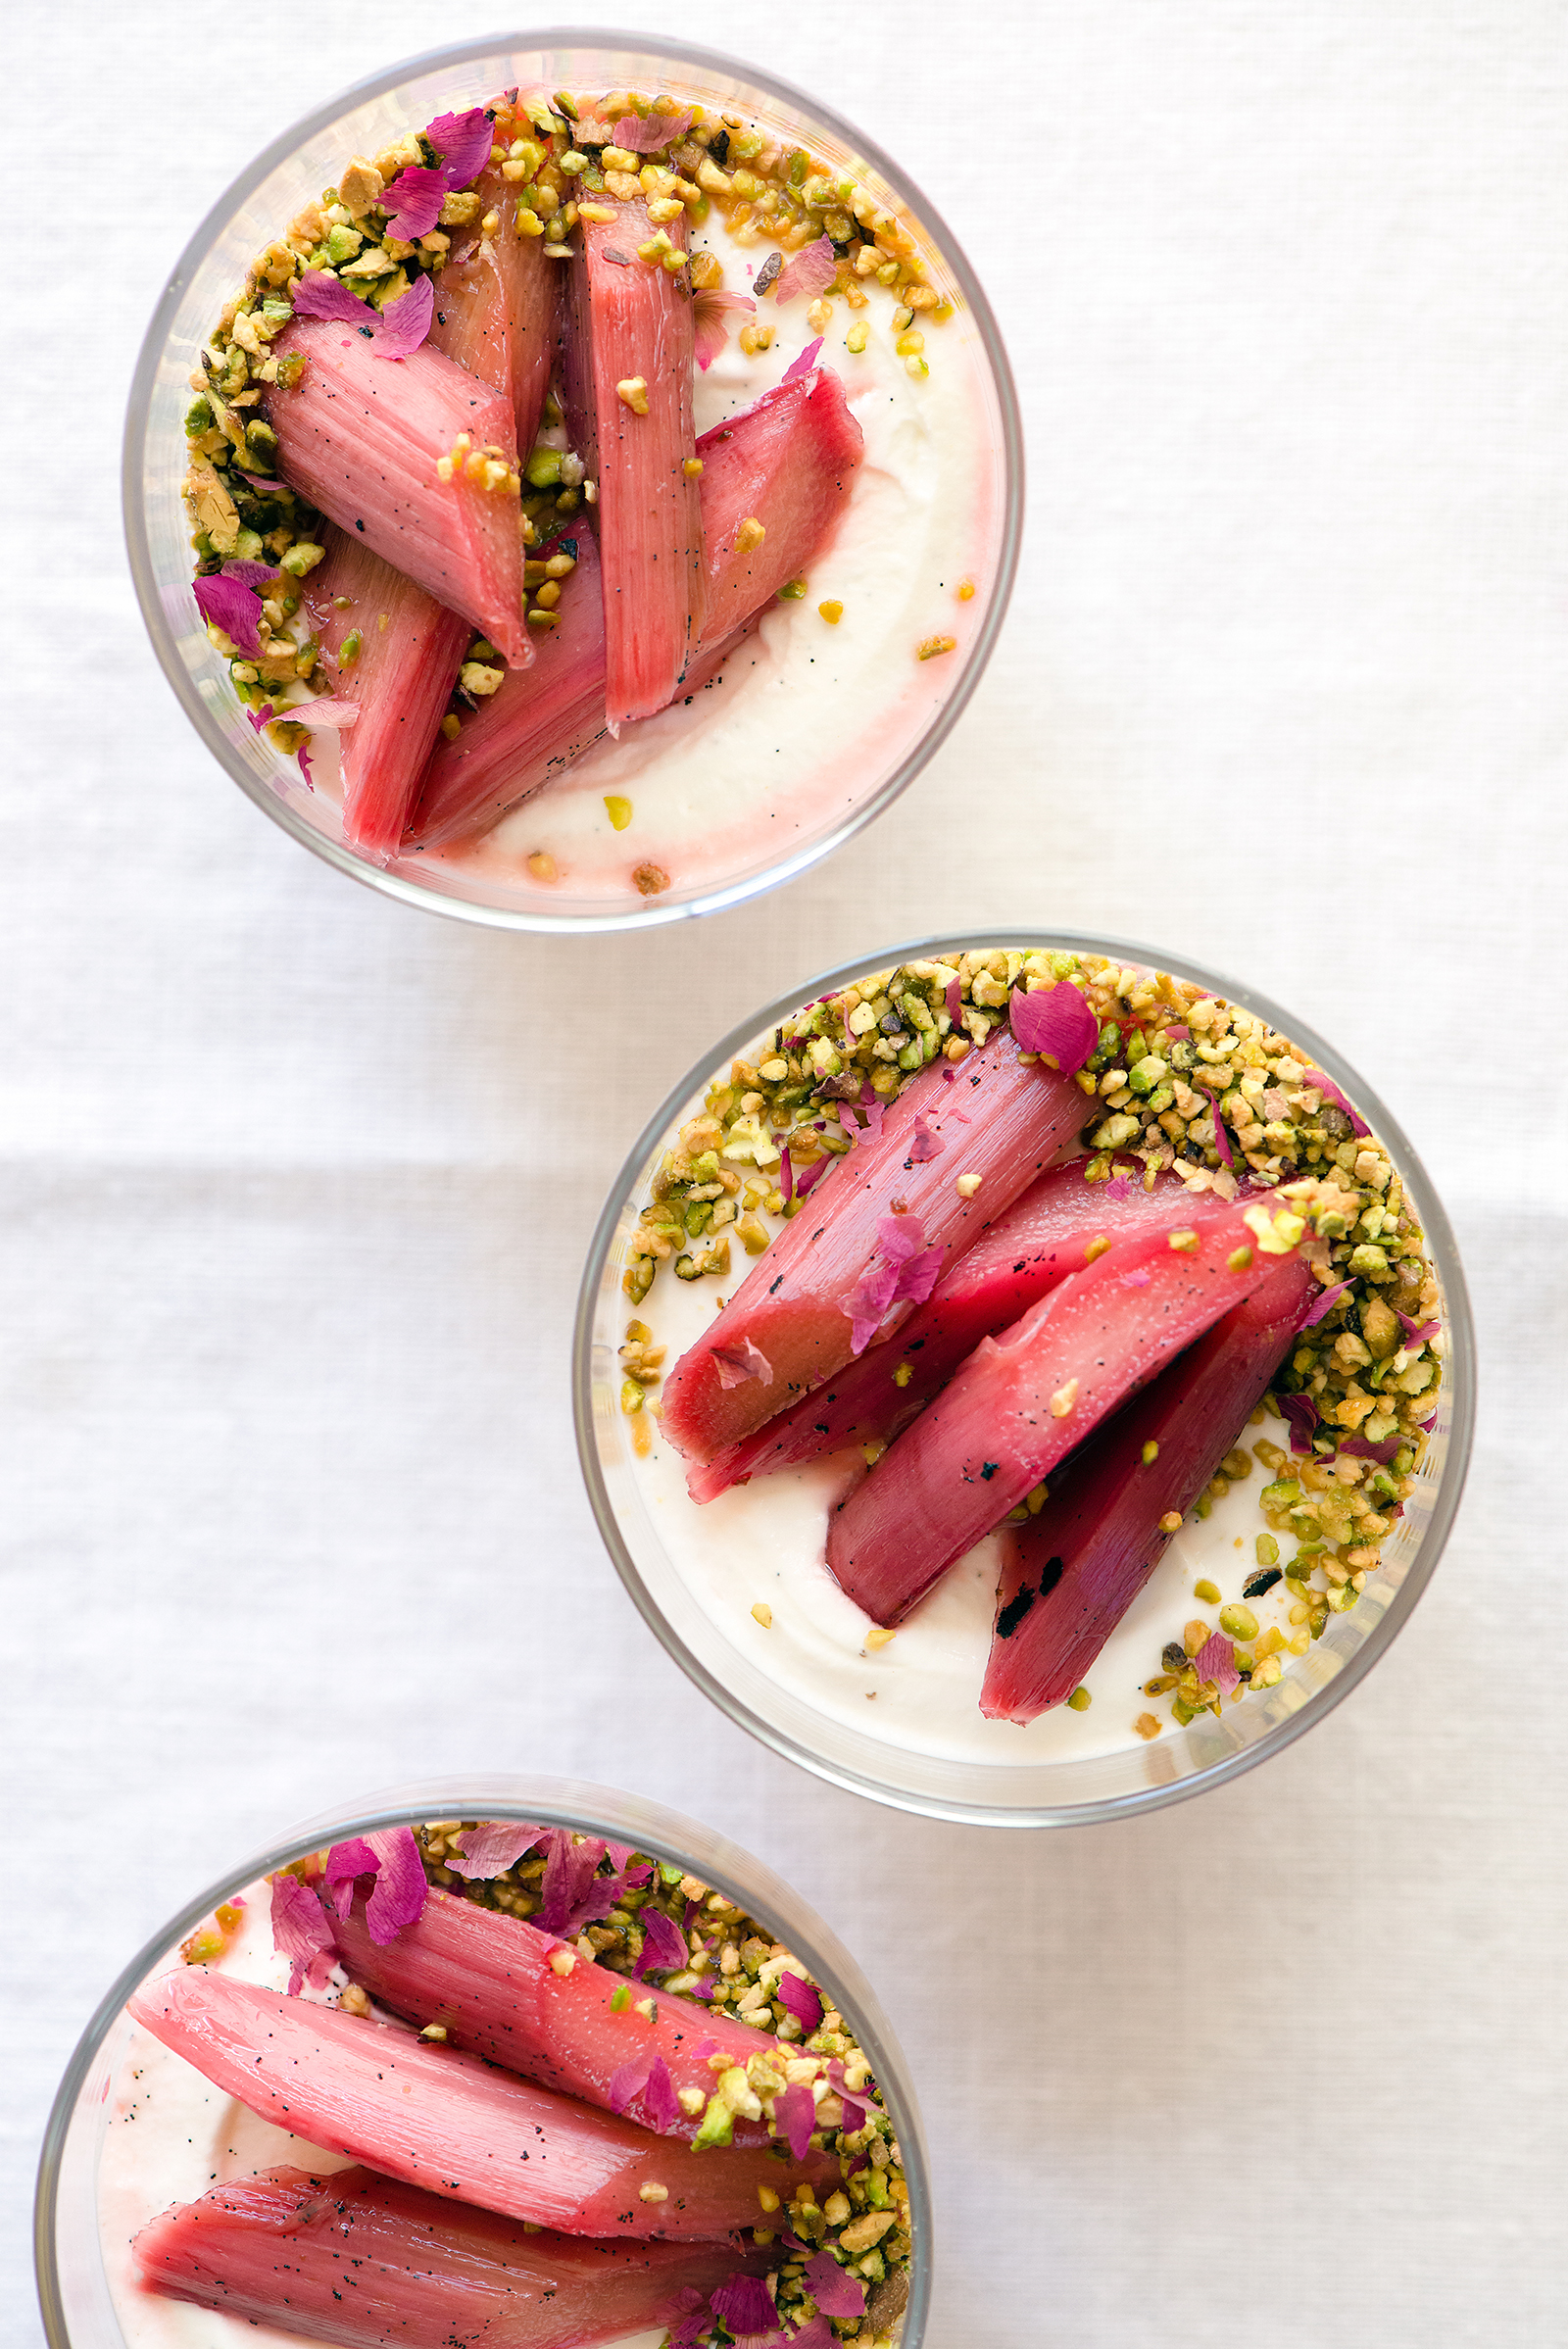 Labneh Mousse with Orange Blossom Rhubarb | Now, Forager | Teresa Floyd